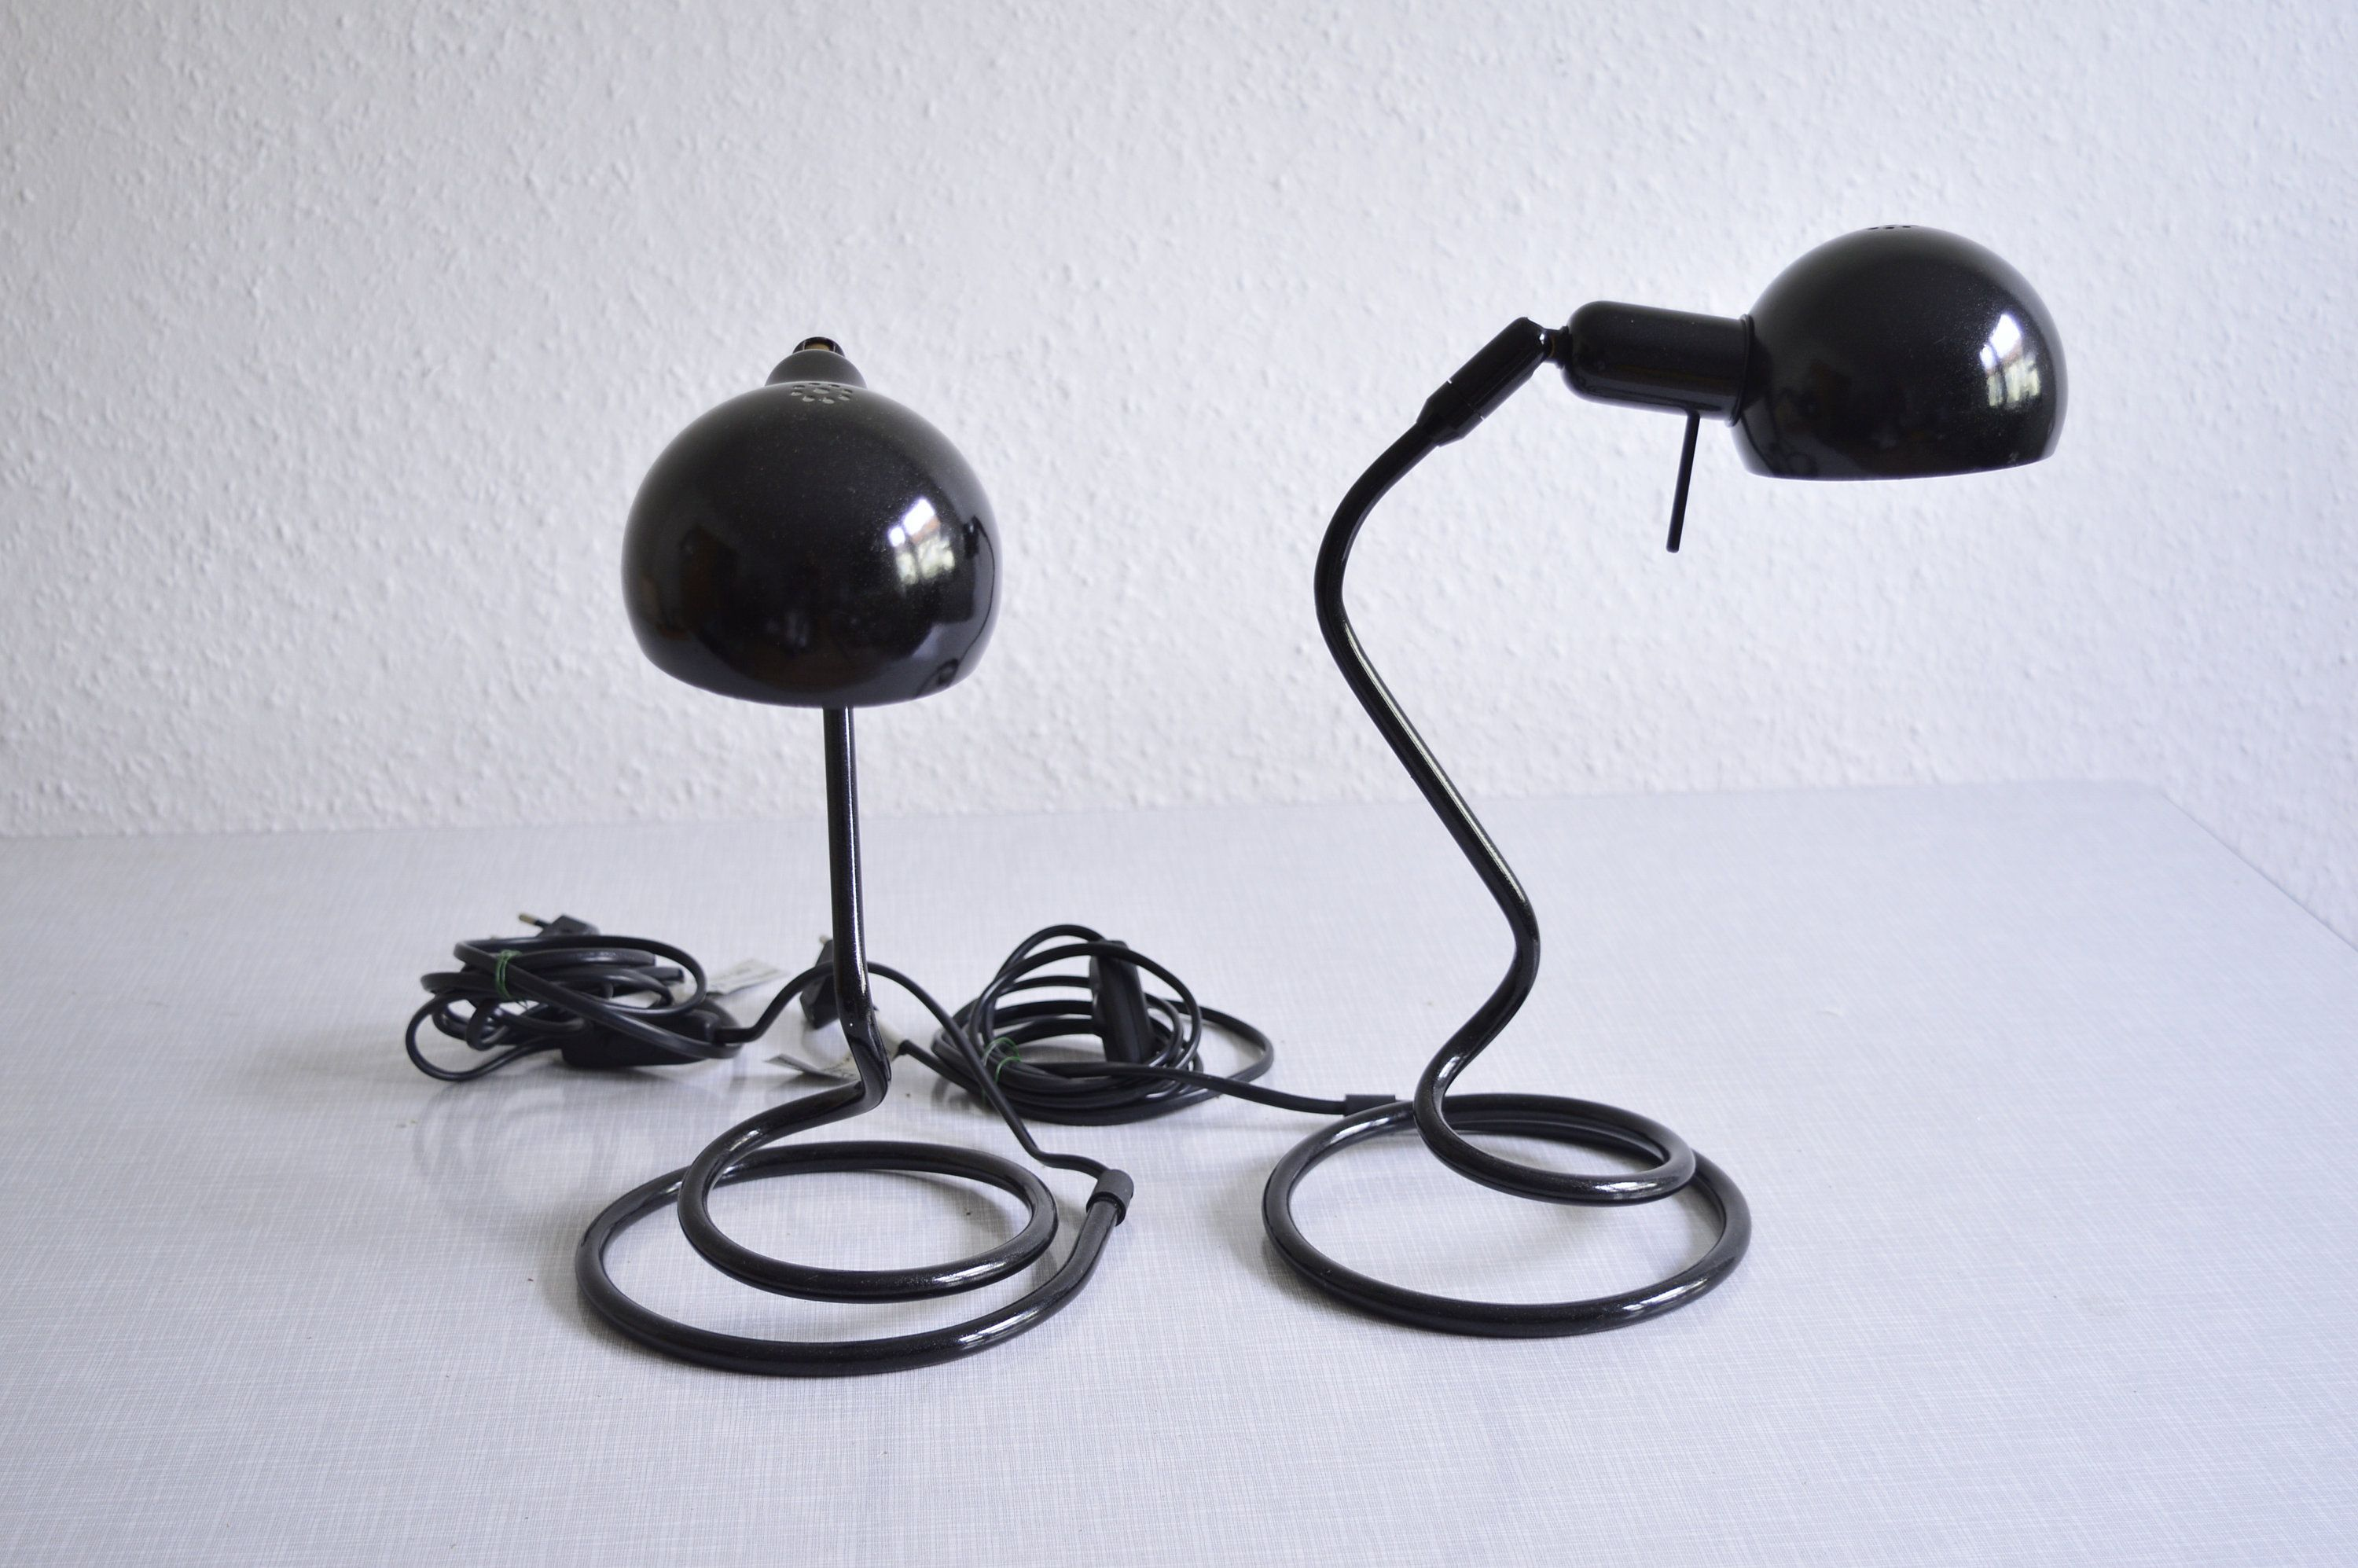 Set Of Two Spiral Shaped Table Lamps From Hkf From The 80s Lampe Tischlampen Schöne Lampen